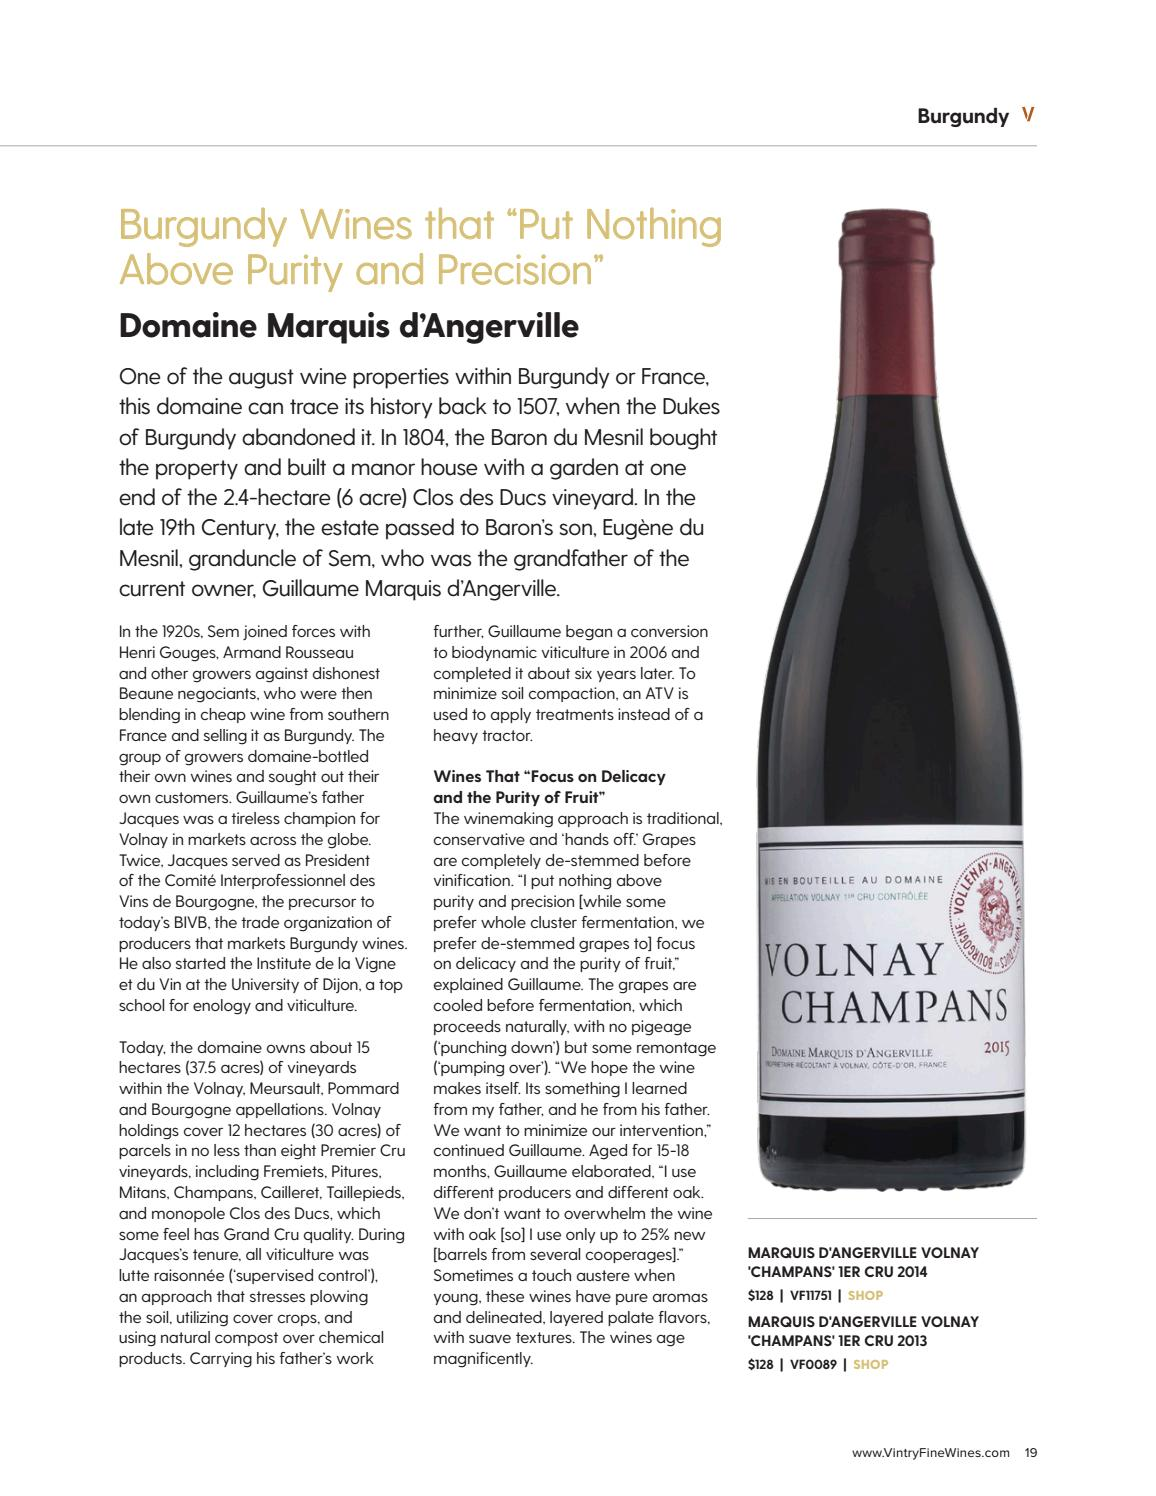 Vintry Holiday Catalog 2017 By Vintry Fine Wines Issuu